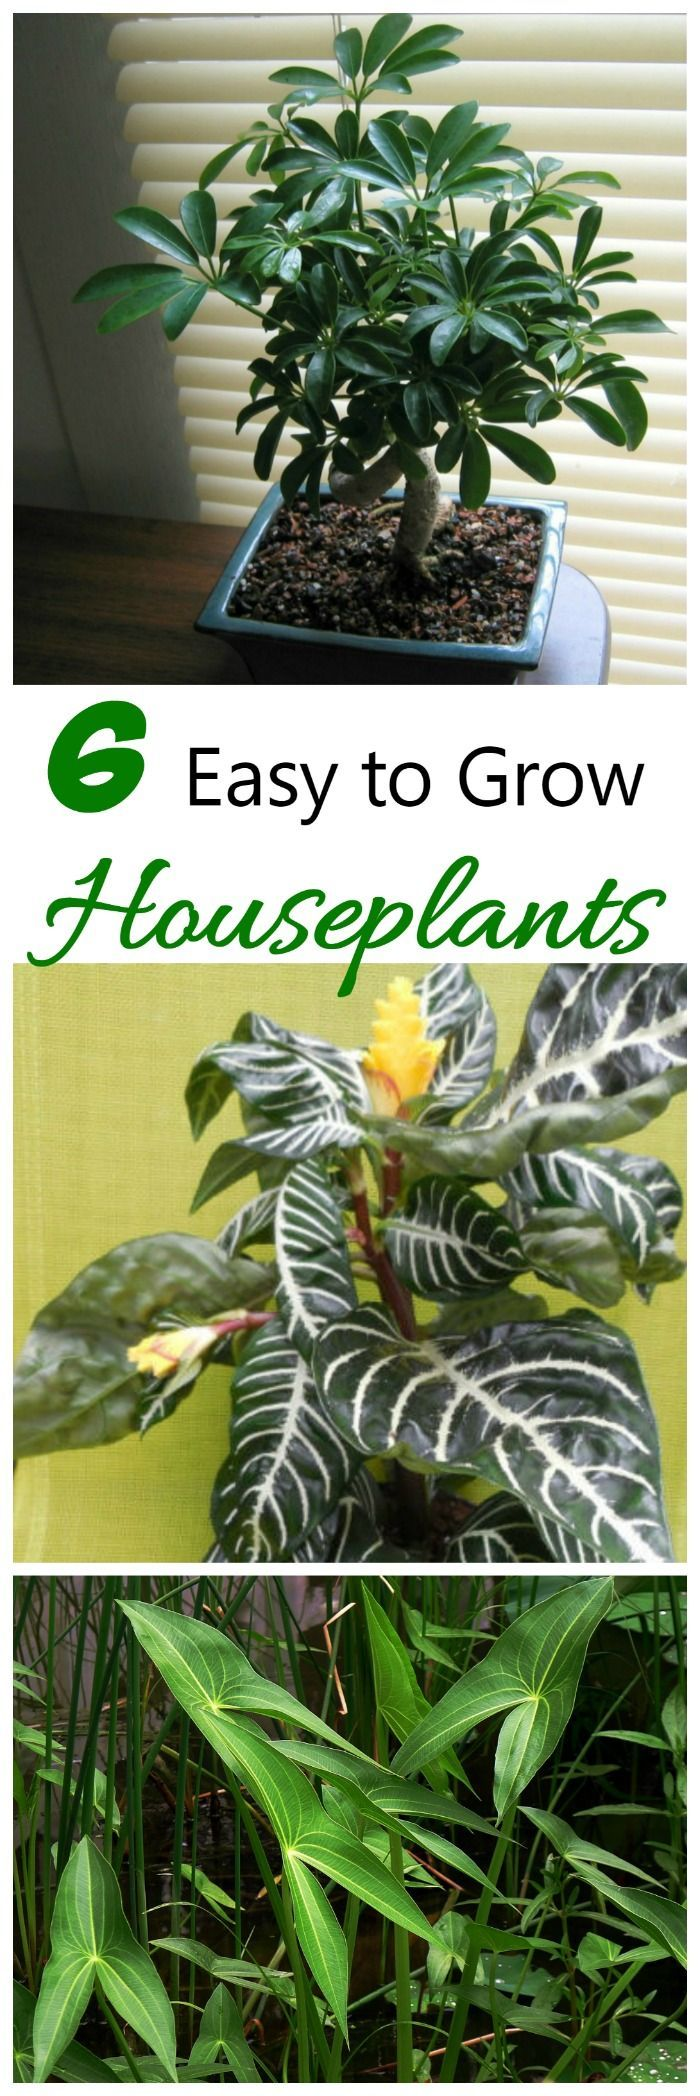 inside plants easy to grow - 700×2096